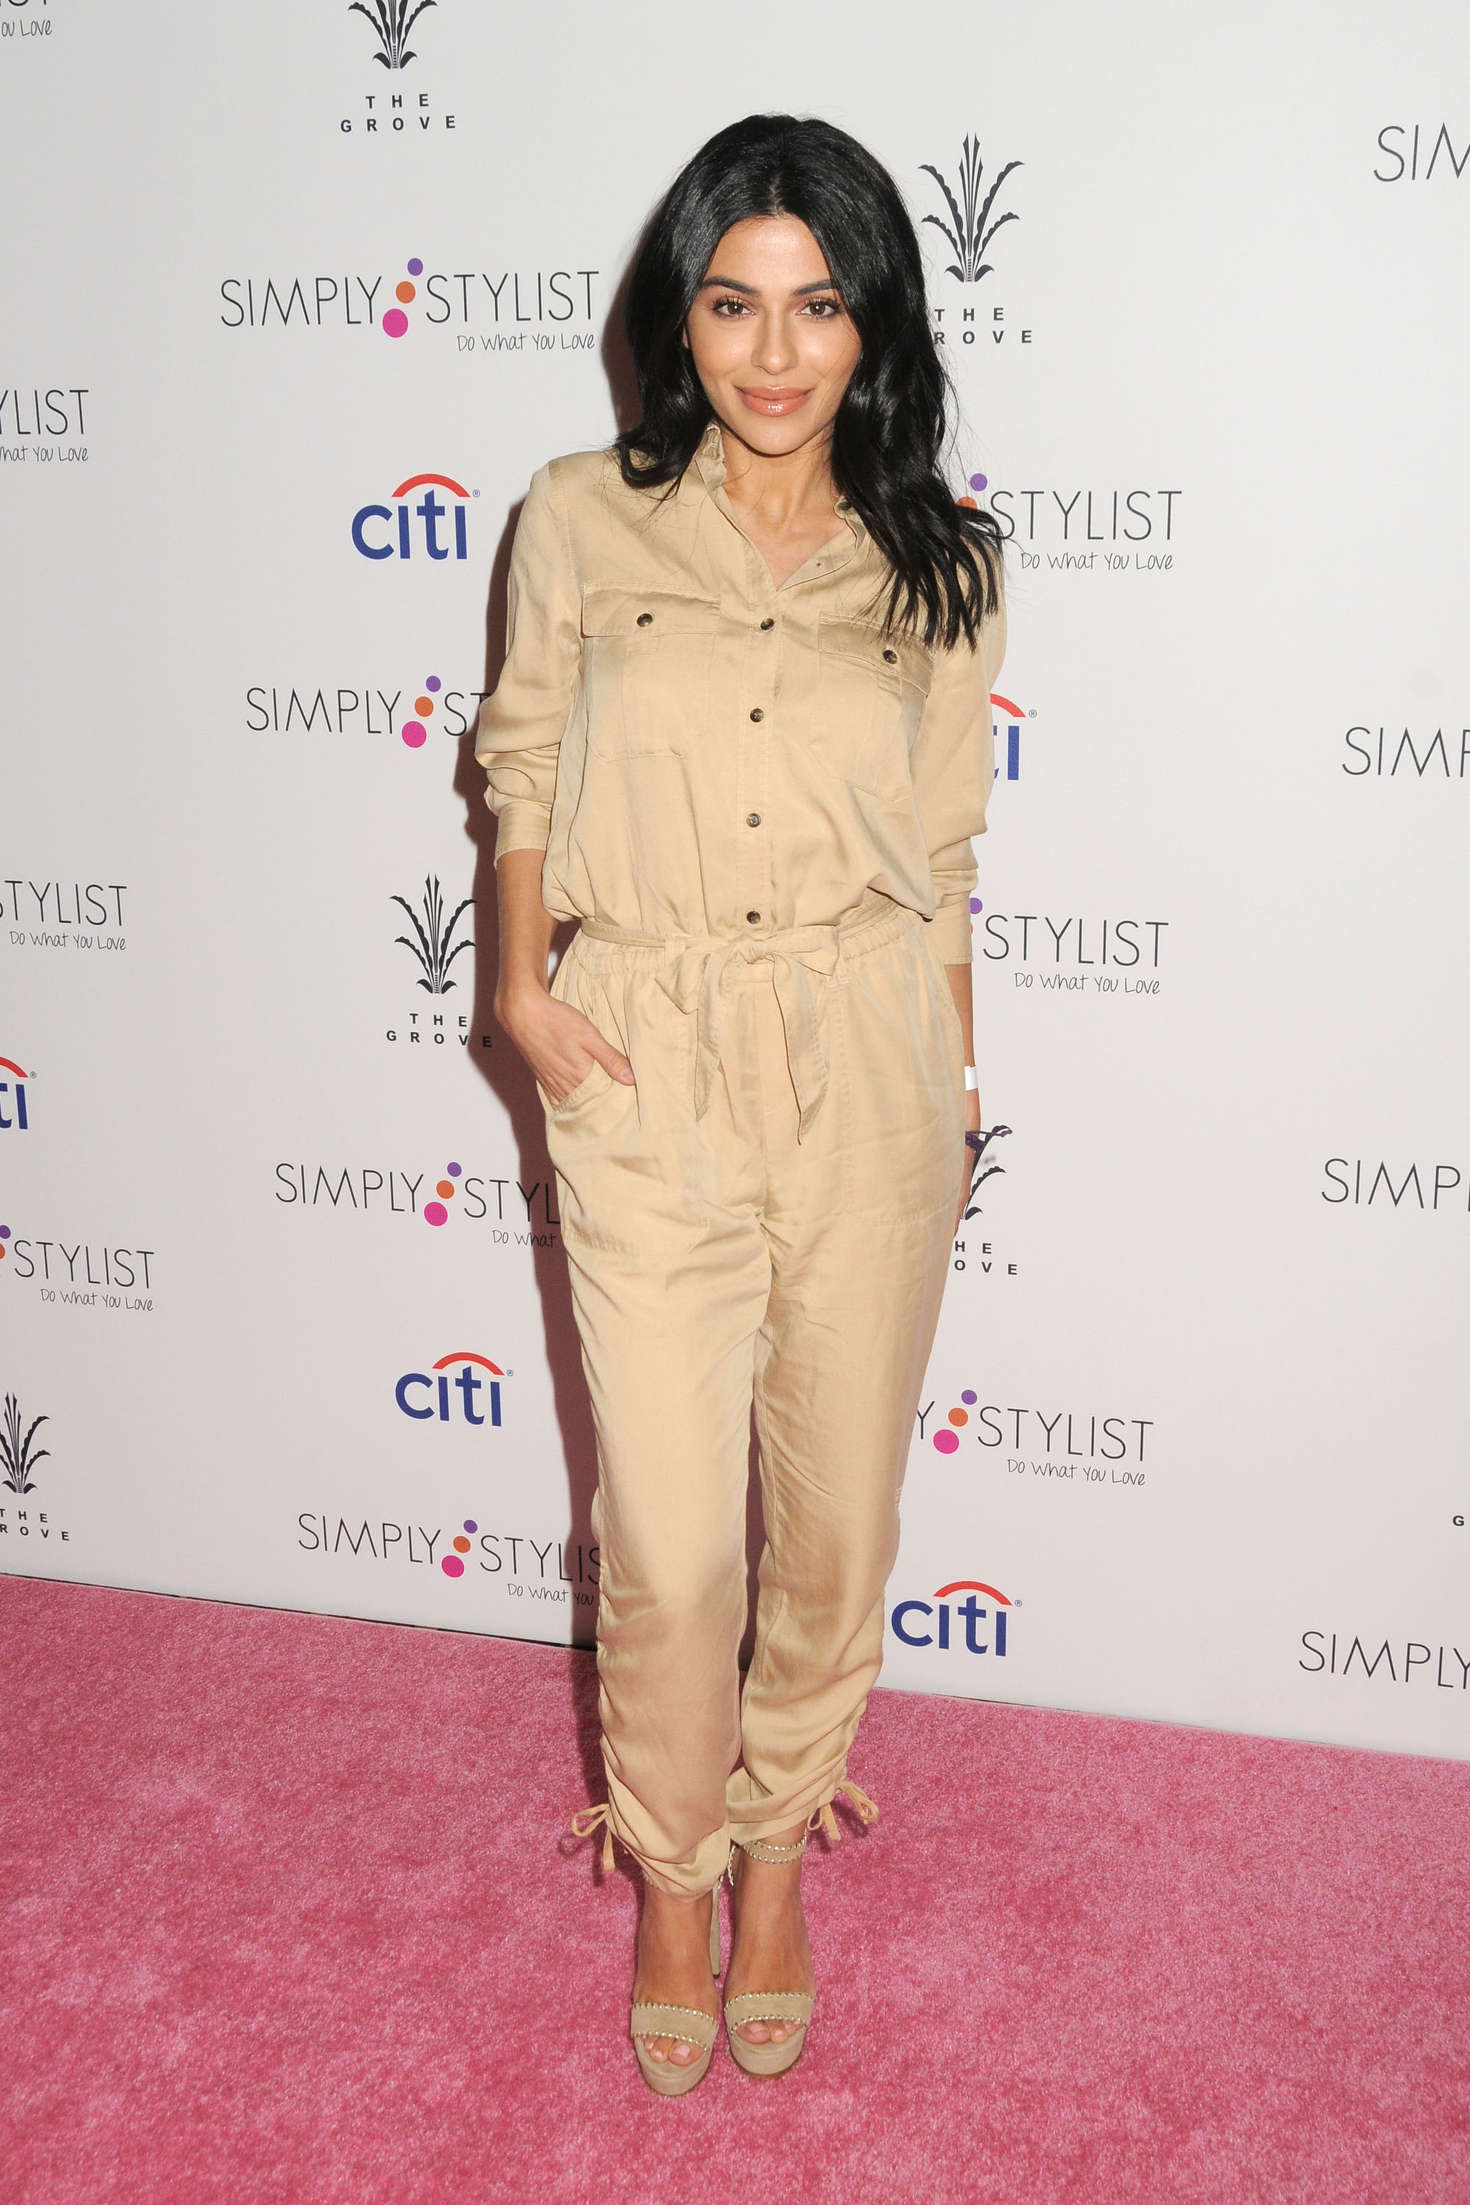 Teni Panosian Simply Stylist Los Angeles Conference in Los Angeles